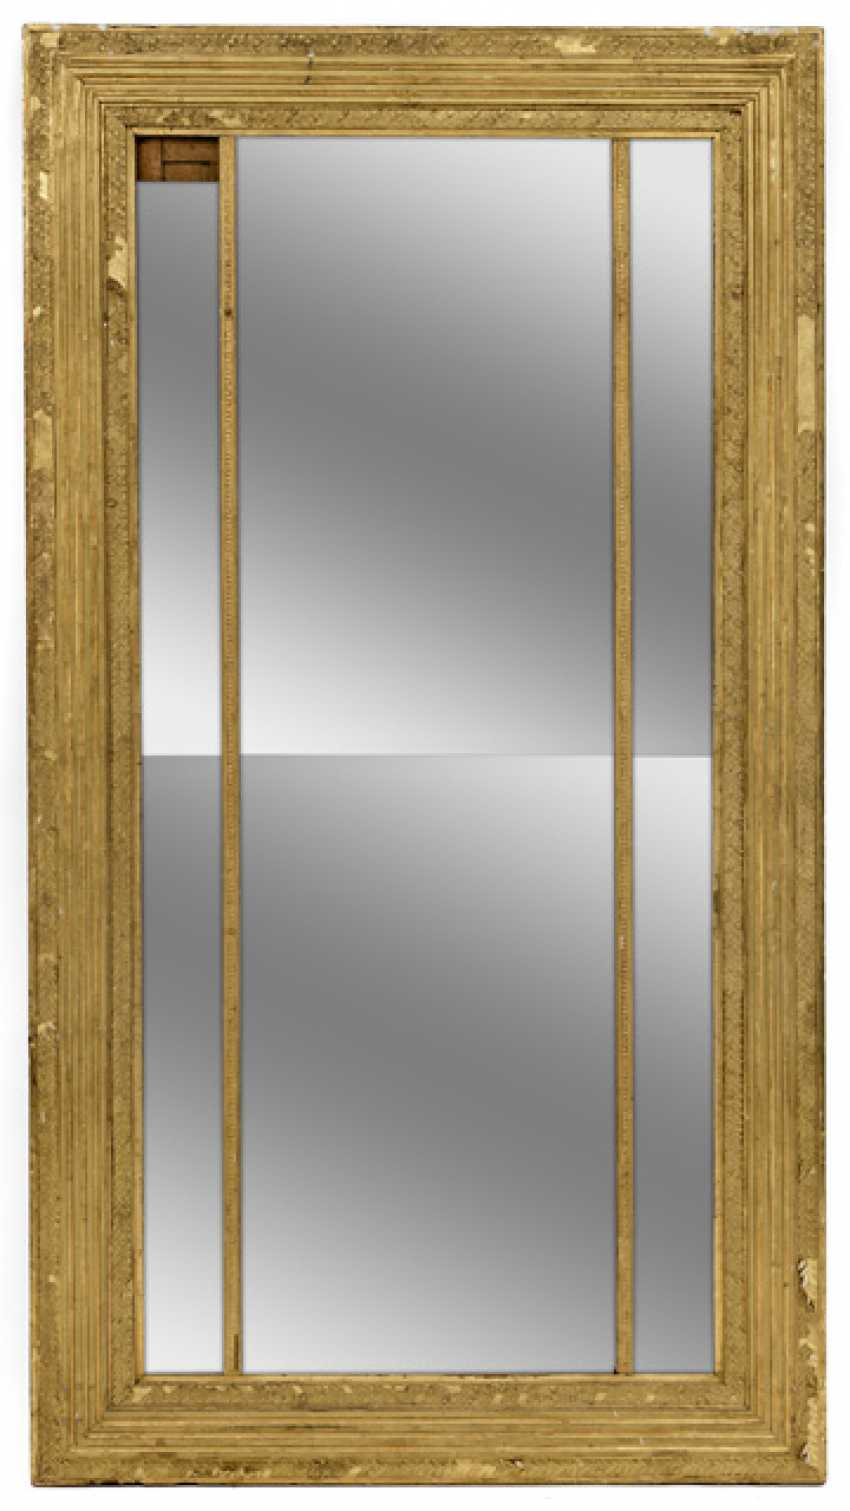 A Large Wall Mirror. Around 1815 - photo 1